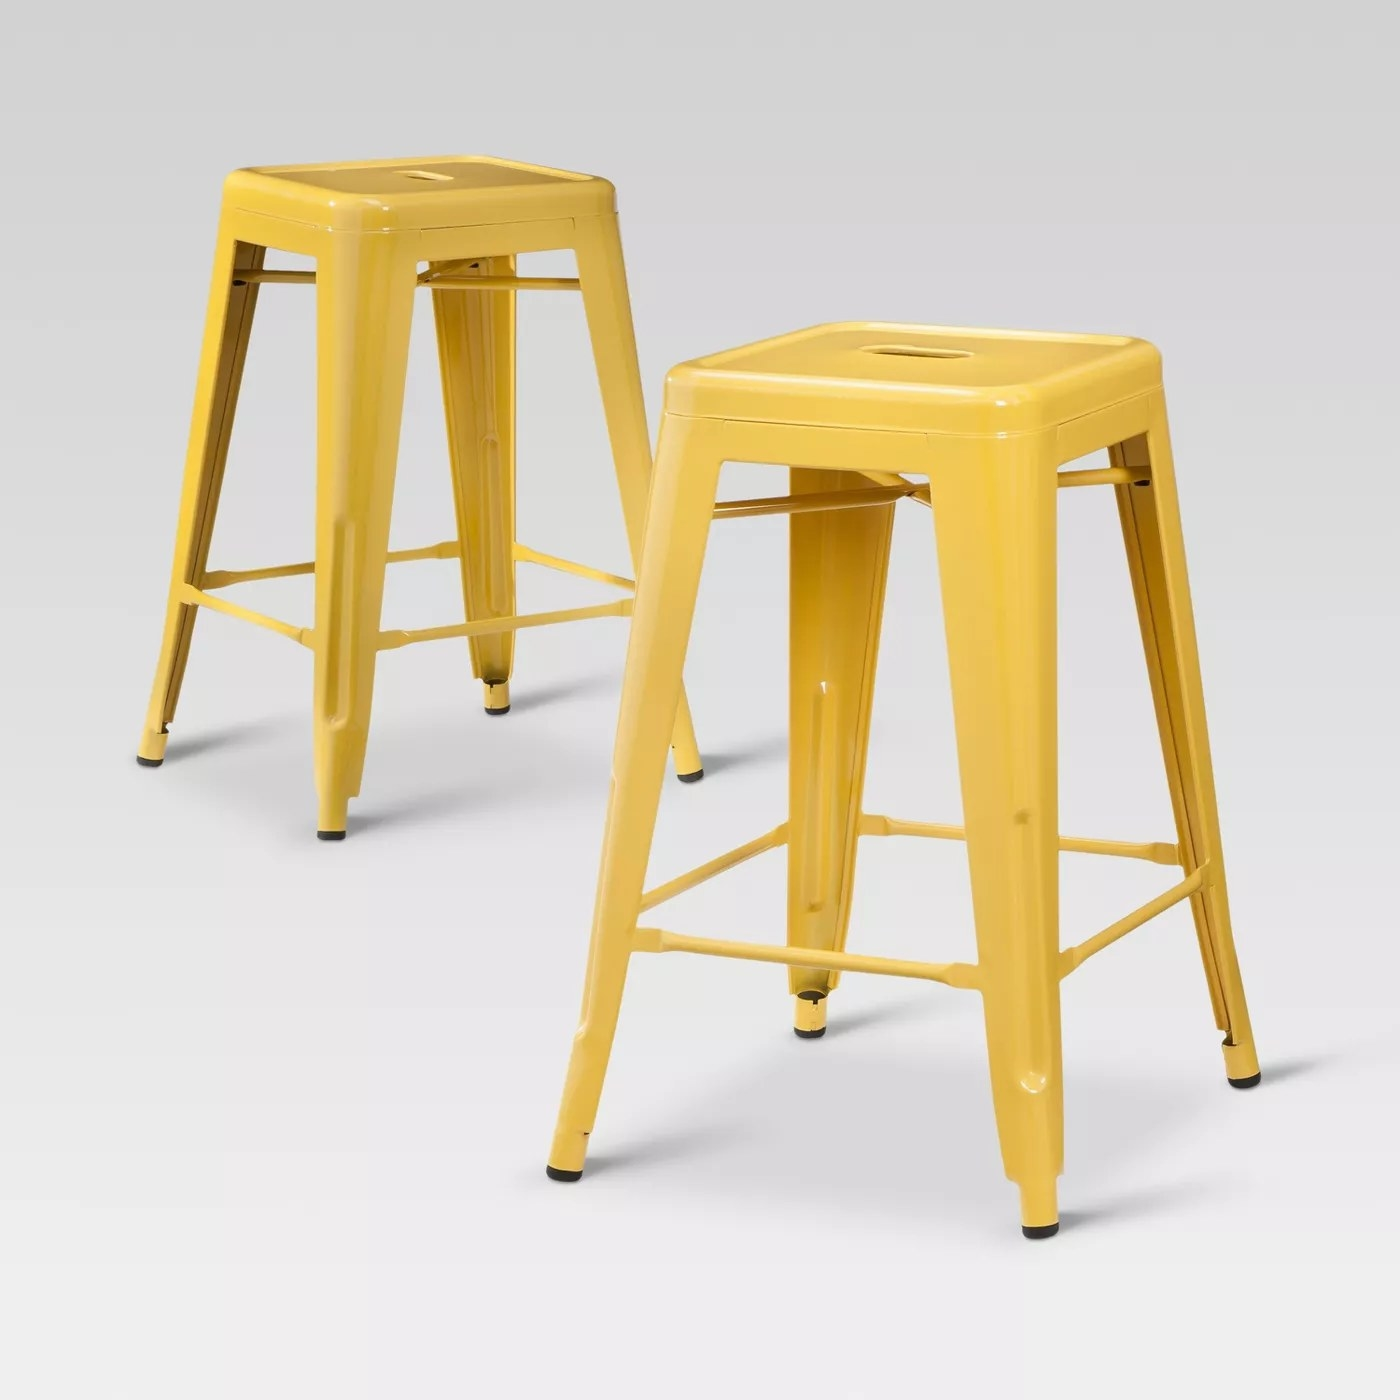 The yellow metal stools